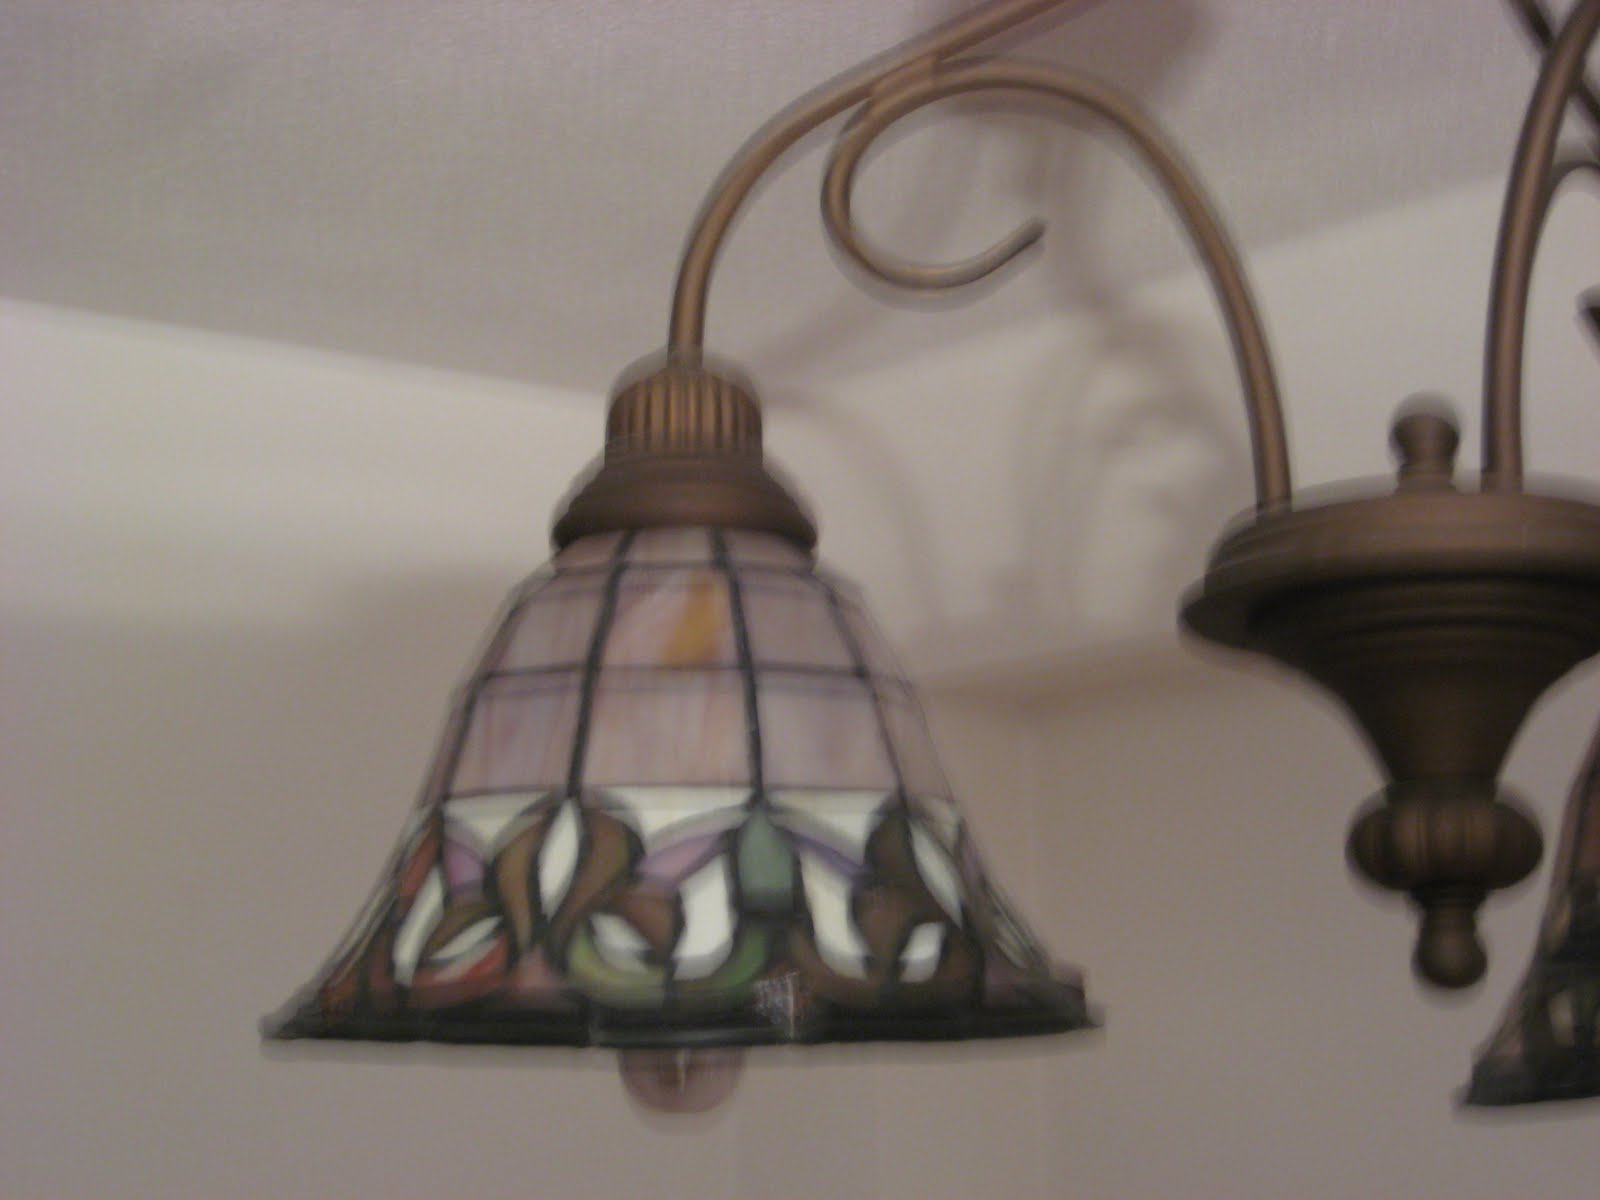 ditmas park listings stained glass pendant lamp chandelier for sale. Black Bedroom Furniture Sets. Home Design Ideas